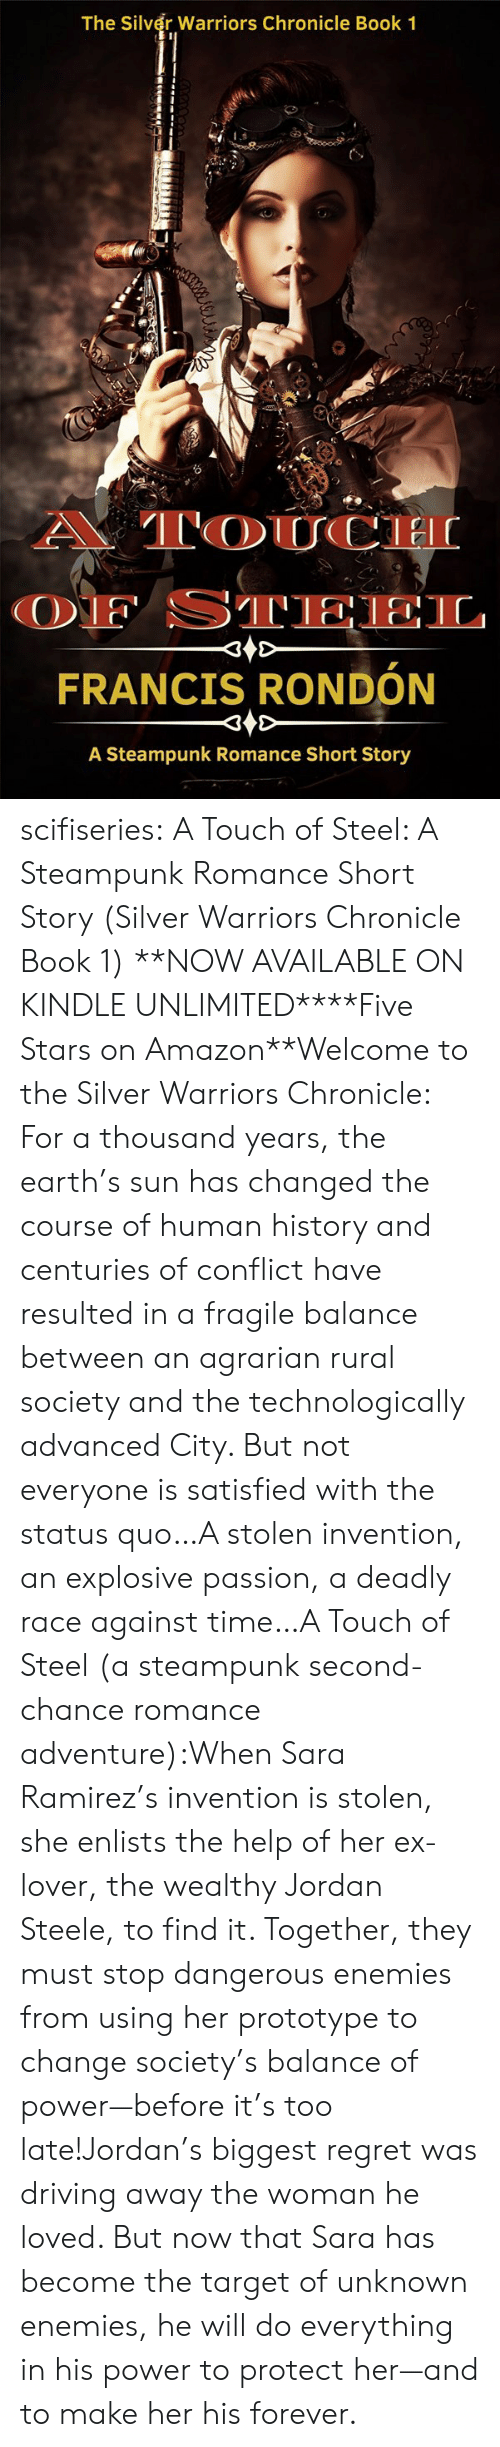 Protect: The Silver Warriors Chronicle Book 1  A TOUCH  OF STEEL  FRANCIS RONDÓN  A Steampunk Romance Short Story scifiseries:   A Touch of Steel: A Steampunk Romance Short Story (Silver Warriors Chronicle Book 1)   **NOW AVAILABLE ON KINDLE UNLIMITED****Five Stars on Amazon**Welcome to the Silver Warriors Chronicle: For a thousand years, the earth's sun has changed the course of human history and centuries of conflict have resulted in a fragile balance between an agrarian rural society and the technologically advanced City. But not everyone is satisfied with the status quo…A stolen invention, an explosive passion, a deadly race against time…A Touch of Steel (a steampunk second-chance romance adventure):When Sara Ramirez's invention is stolen, she enlists the help of her ex-lover, the wealthy Jordan Steele, to find it. Together, they must stop dangerous enemies from using her prototype to change society's balance of power—before it's too late!Jordan's biggest regret was driving away the woman he loved. But now that Sara has become the target of unknown enemies, he will do everything in his power to protect her—and to make her his forever.